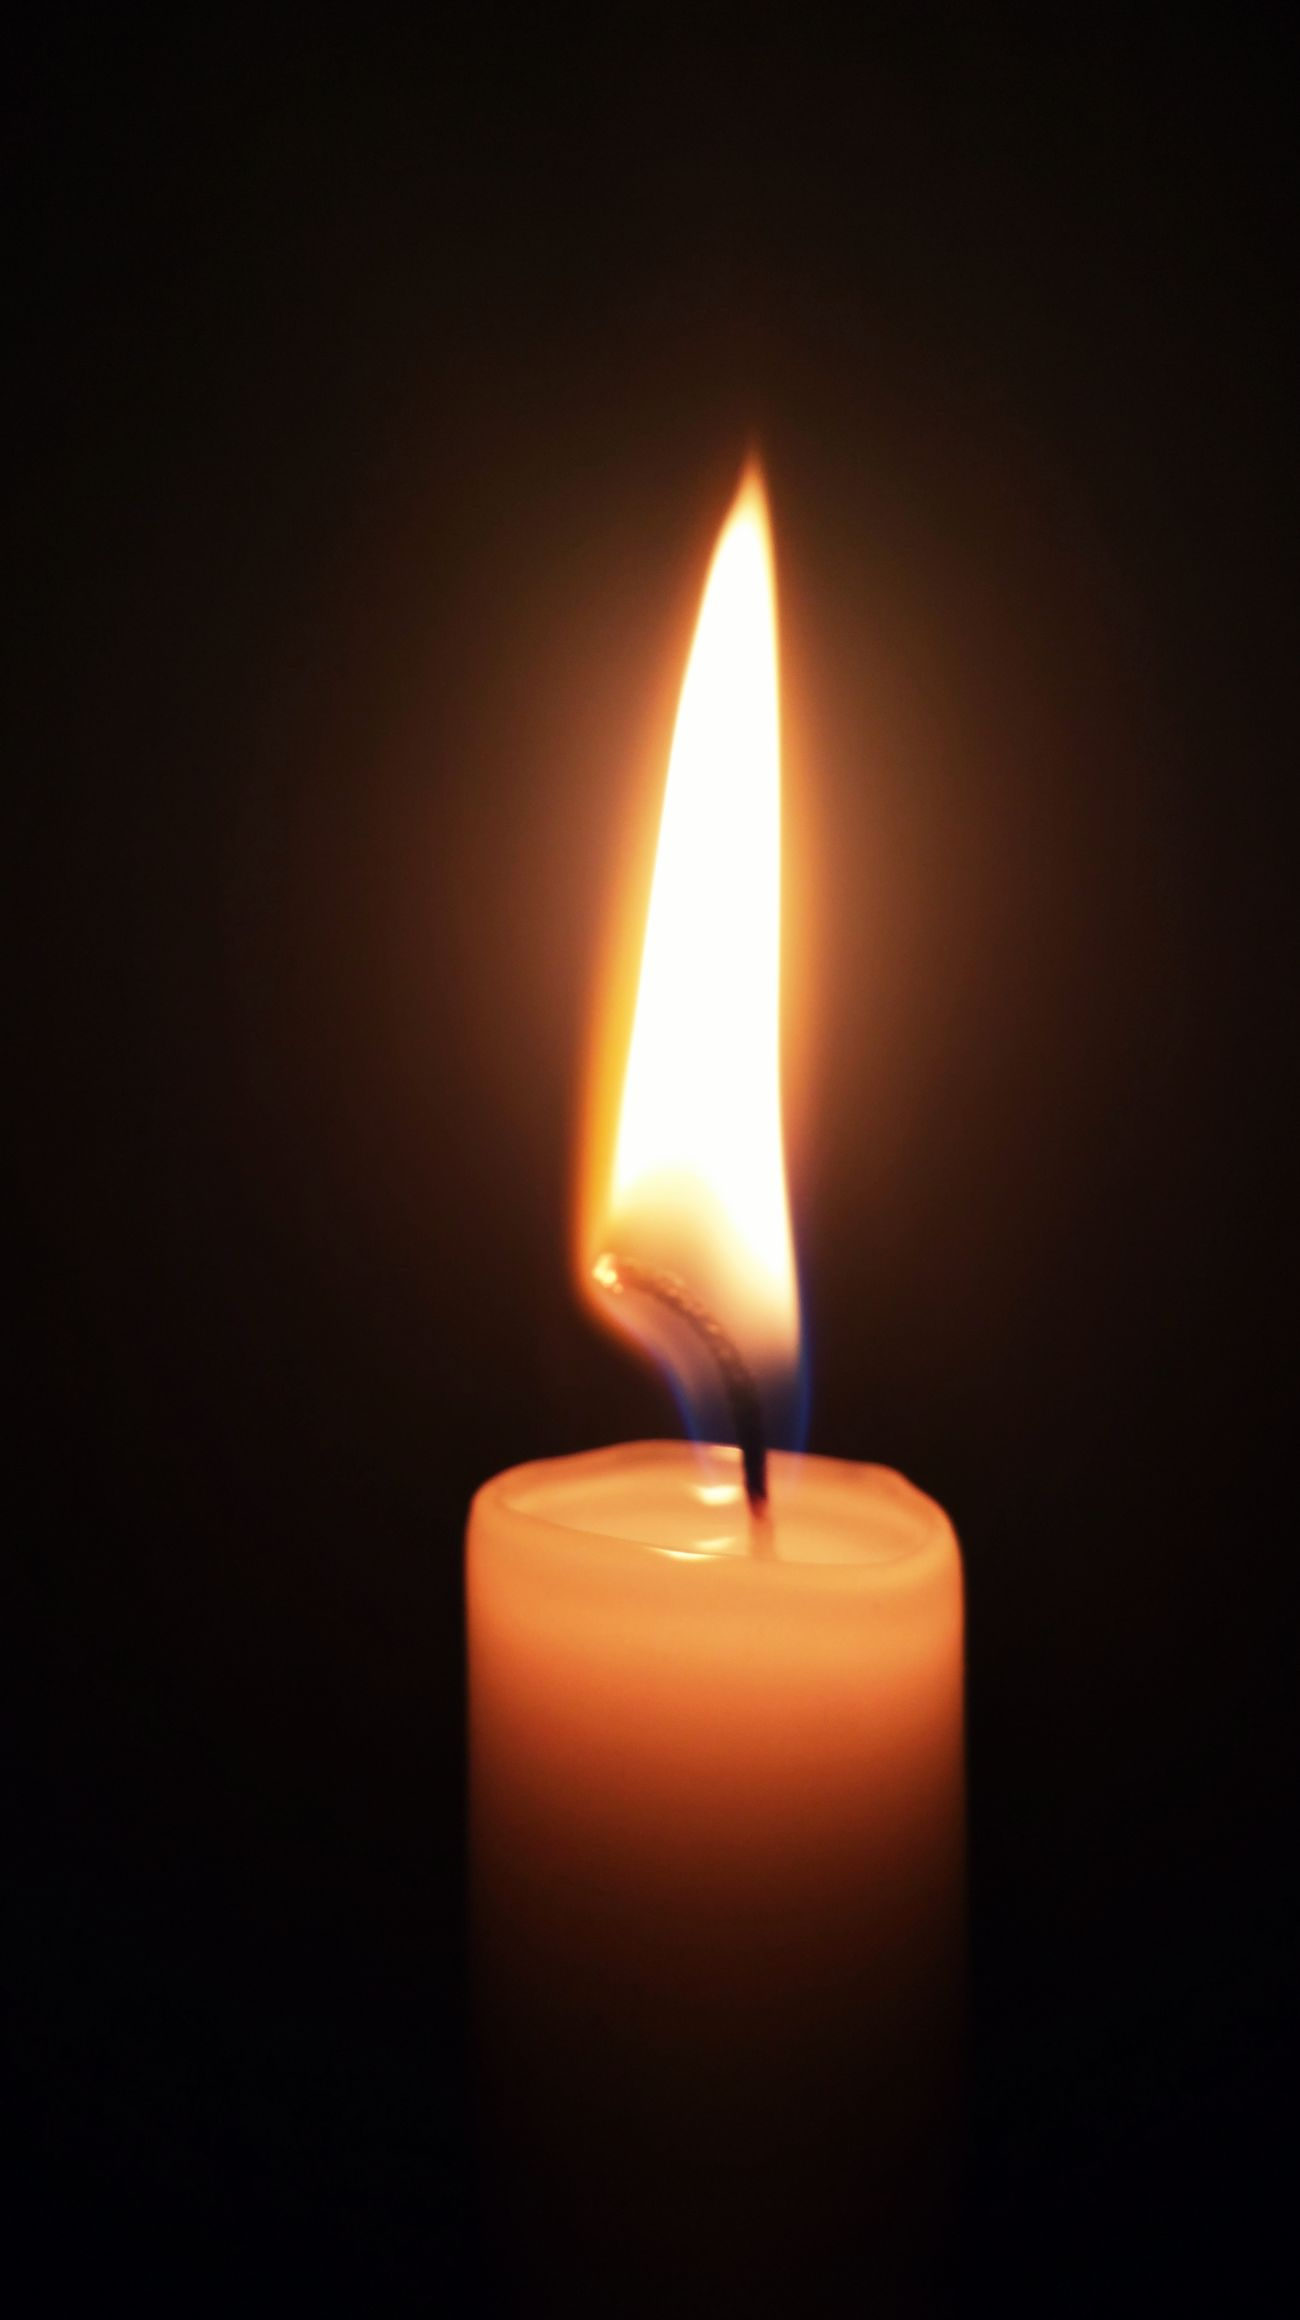 Black Background Burning Candle Close-up Dark Fire - Natural Phenomenon Flame Glowing Heat - Temperature Illuminated Indoors  Lighting Equipment No People Single Object Wax